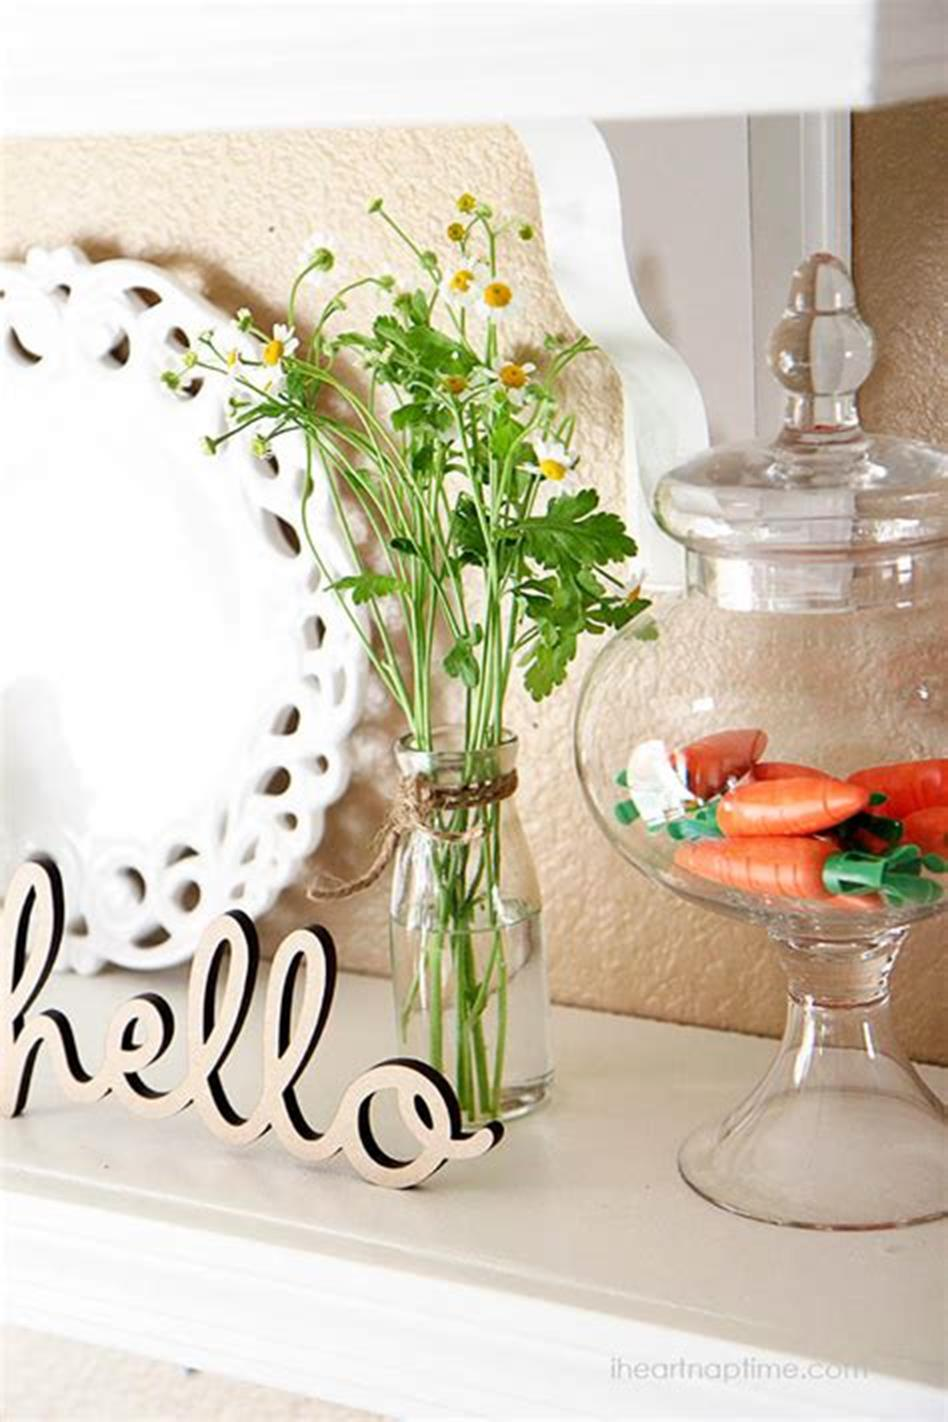 42 DIY Beautiful Vintage Spring Decorations Ideas You Will Love 9